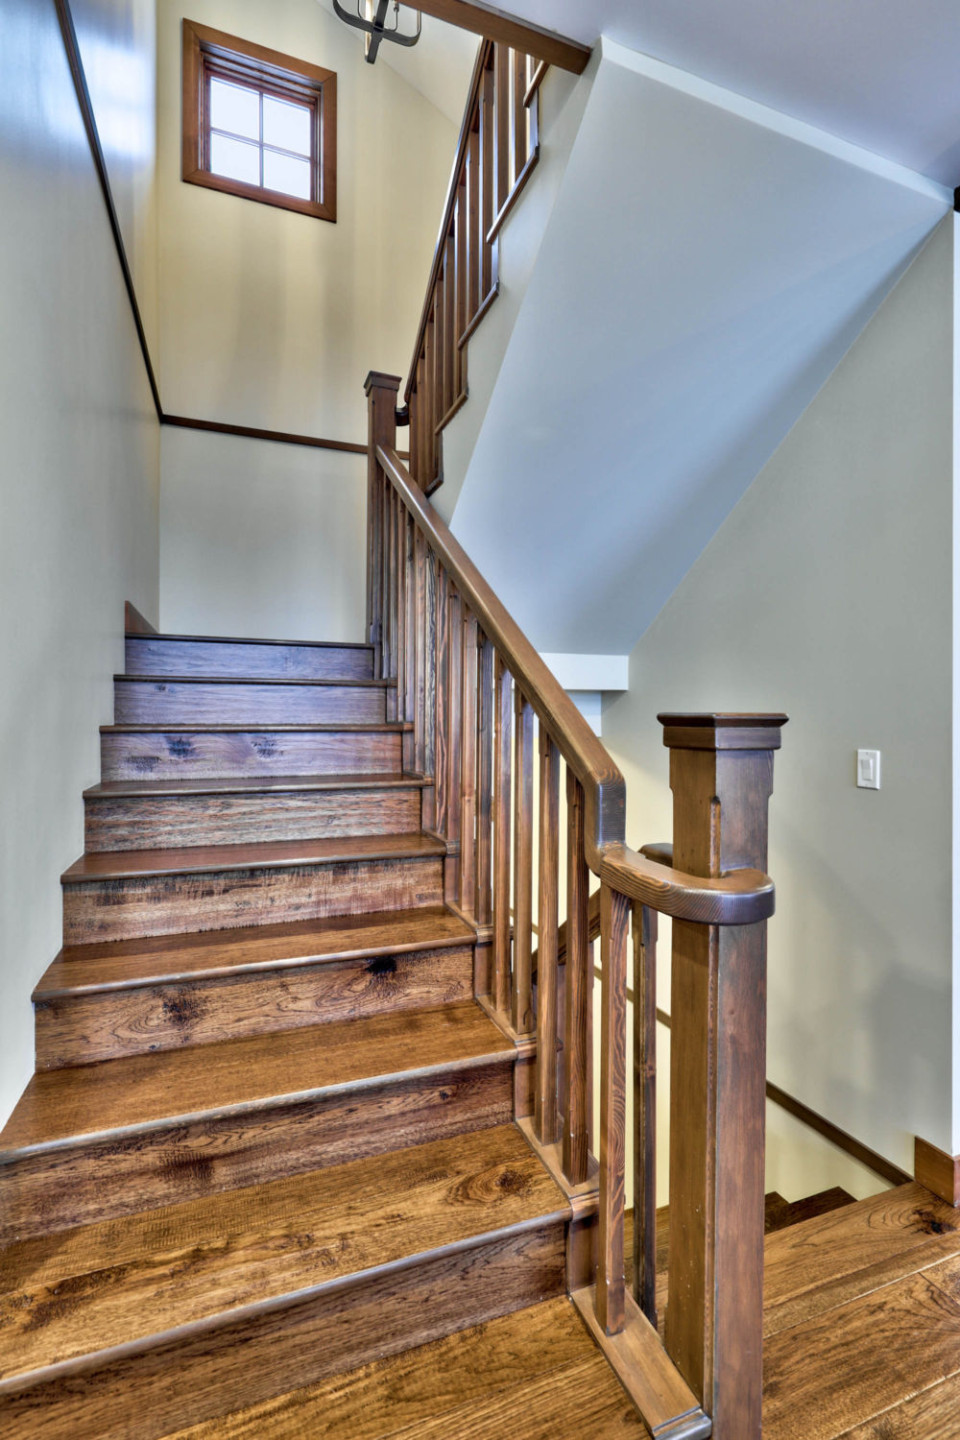 Staircase heading upstairs in a timber frame log home